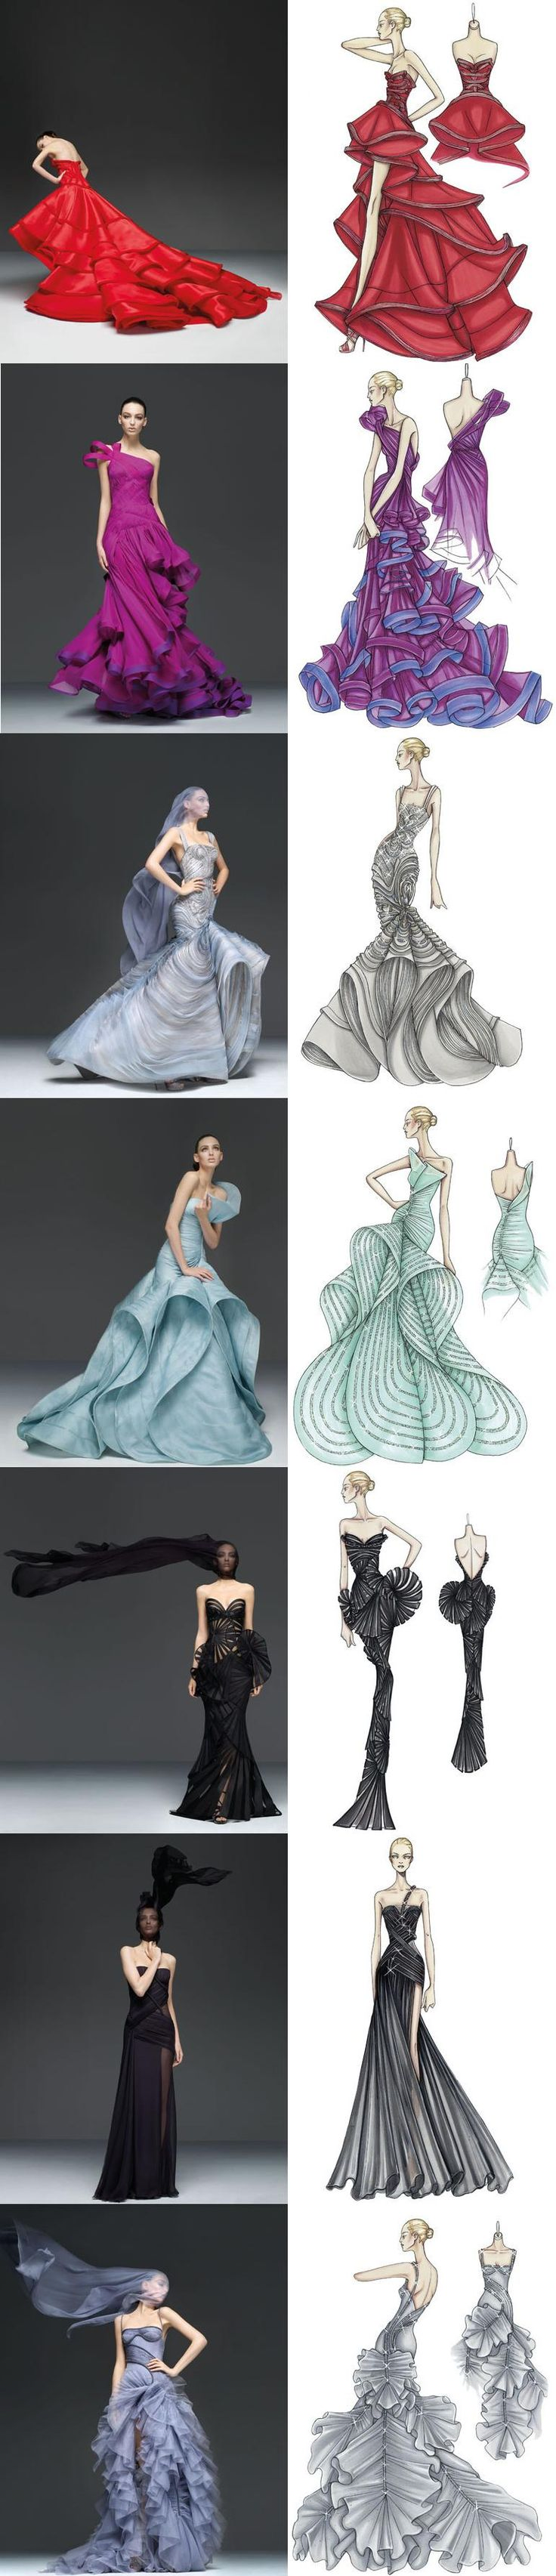 From Sketch to Dress